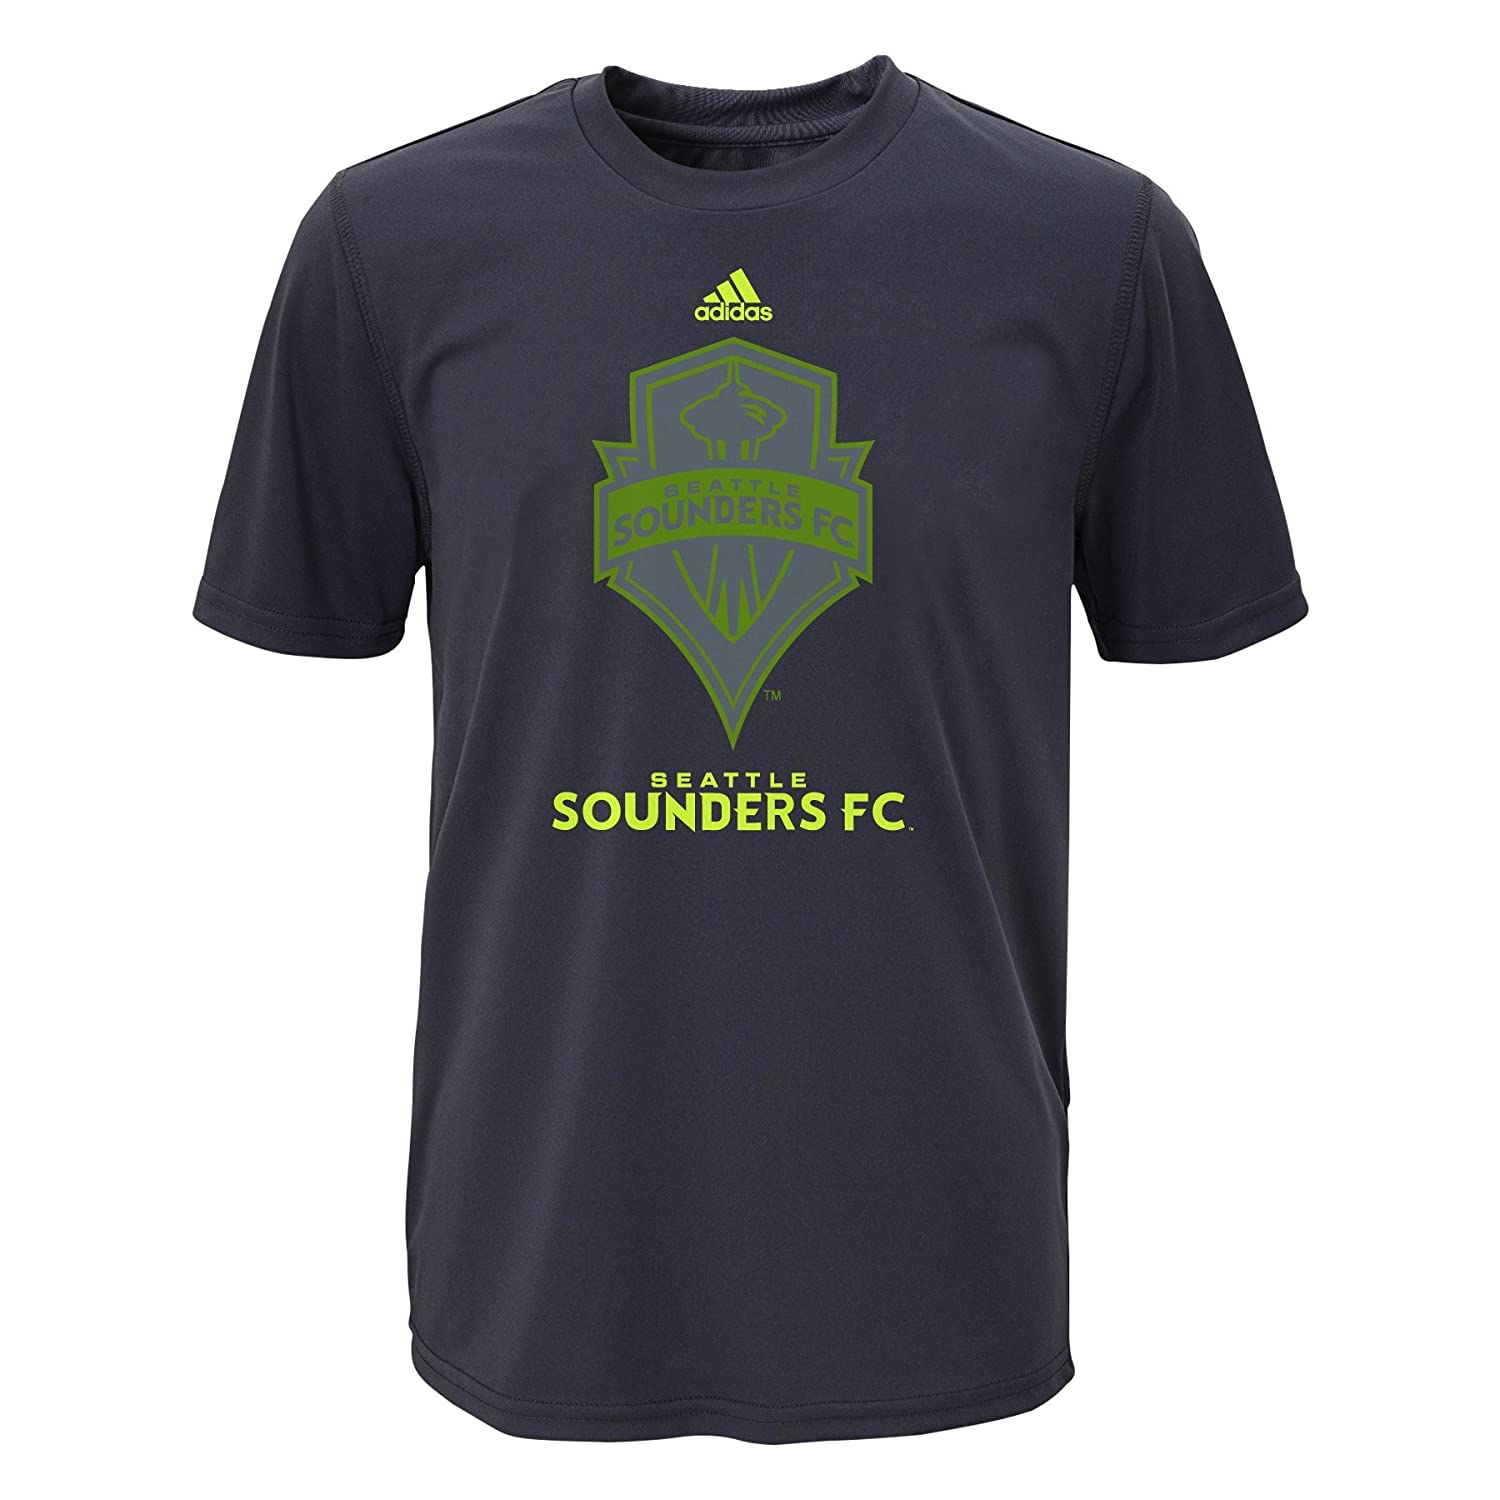 【最安値に挑戦】 MLS Youth Boys Boys 8 – 210パフォーマンスTee Sounders Medium Youth (10/12) Seattle Sounders FC B011IJ6KW8, バイオポリ上越:a035ab8e --- a0267596.xsph.ru